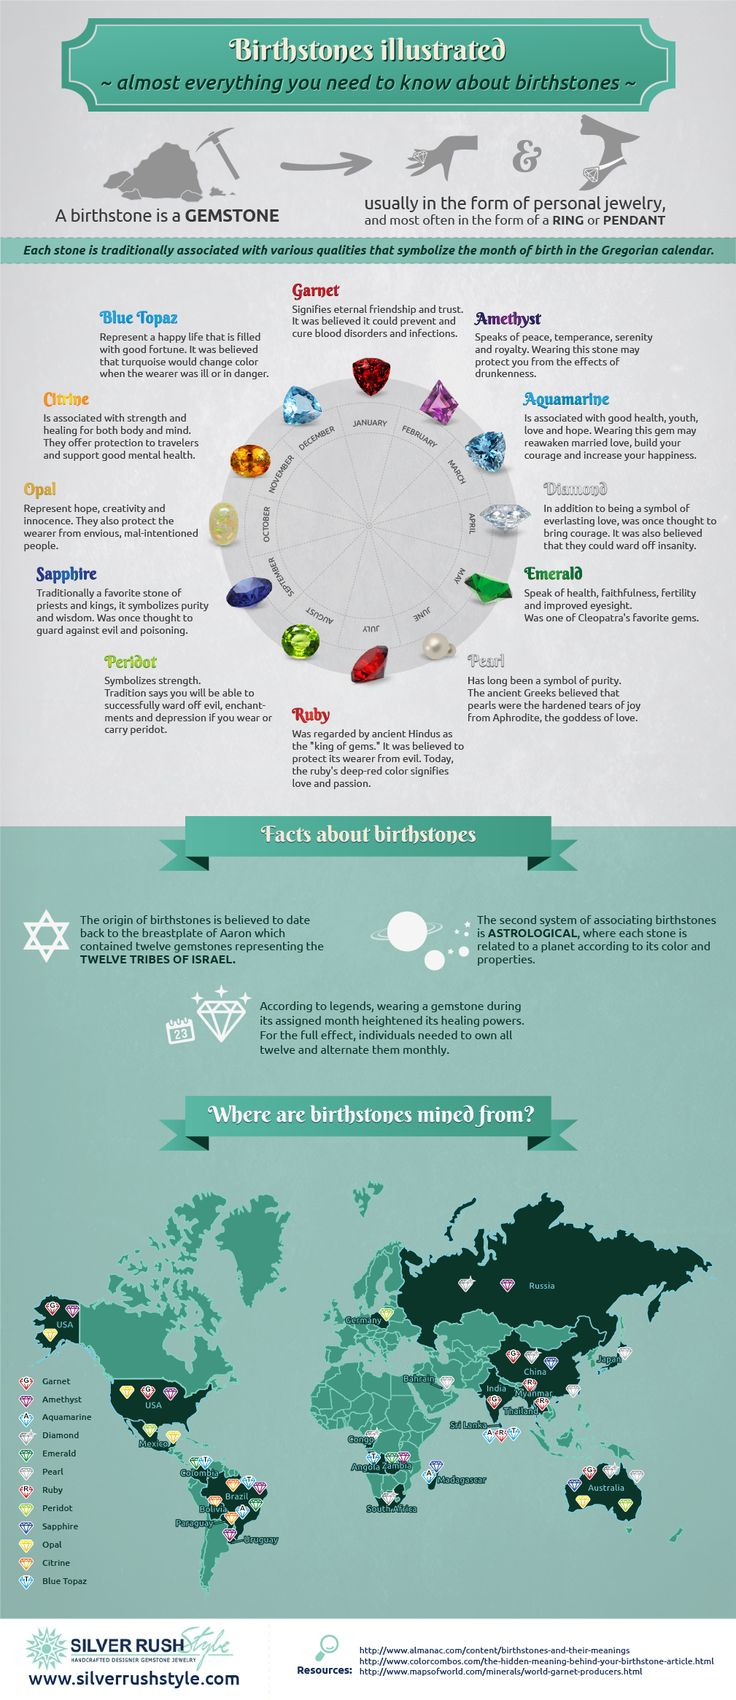 Birthstone Infographic: Everything you need to know about birthstones